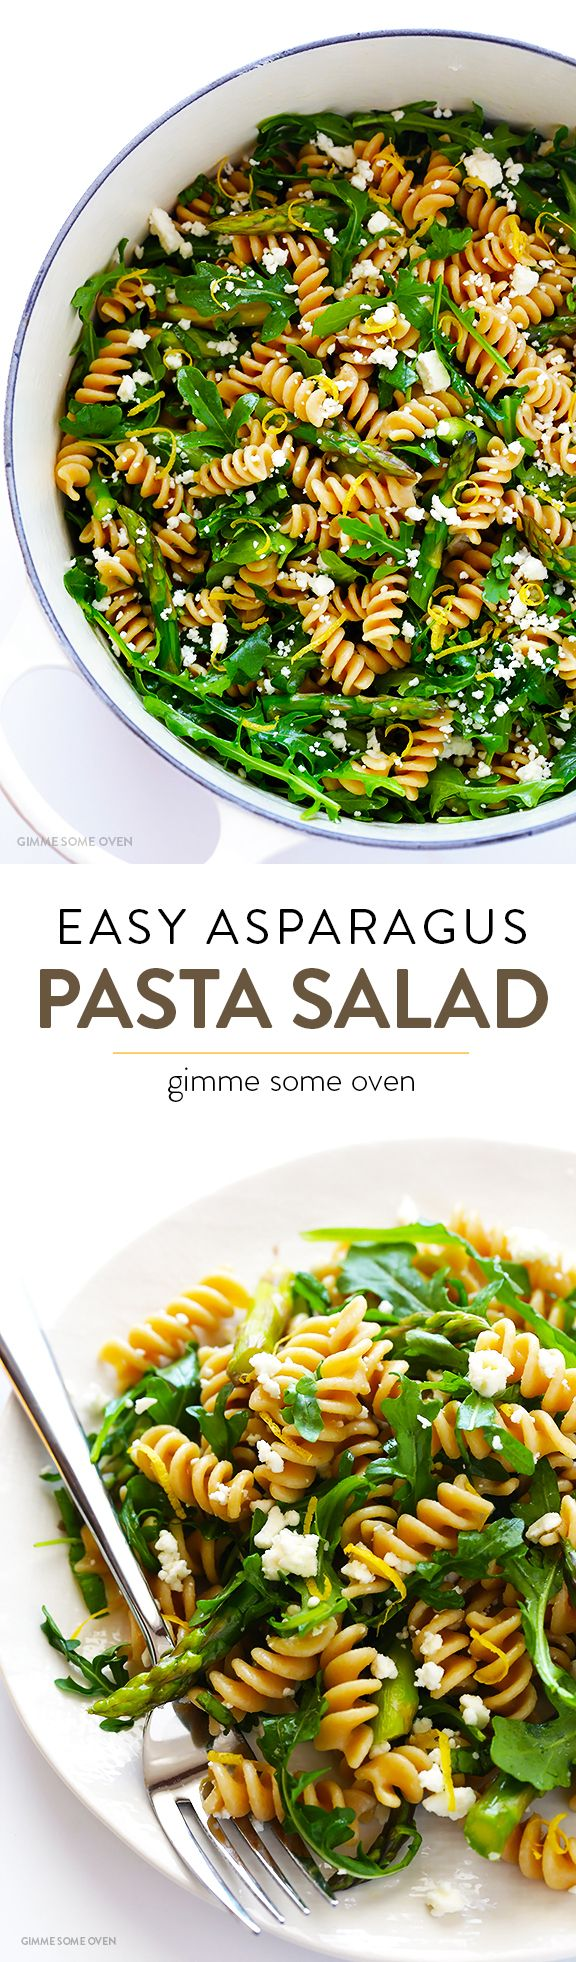 Asparagus & Arugula Pasta Salad -- easy to make, delicious, and perfect for spring! | gimmesomeoven.com